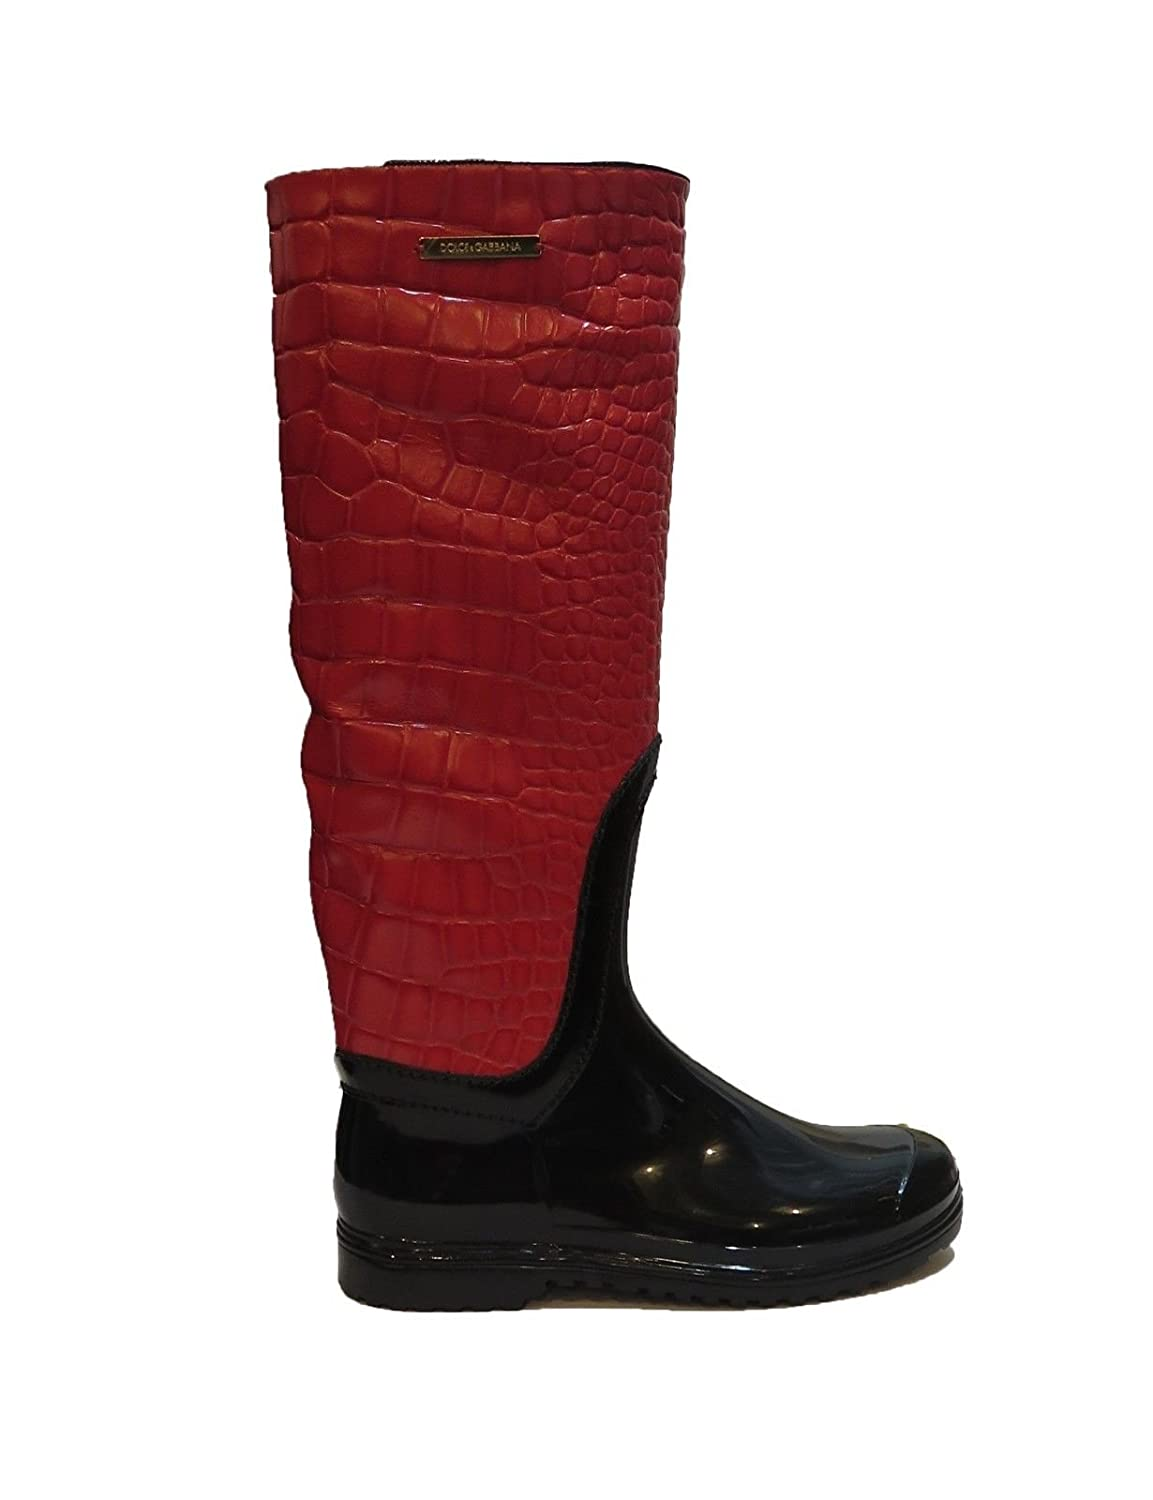 DOLCE & GABBANA Italy Woman's Red Crocodile Leather Rubber Rainboots Boots AA